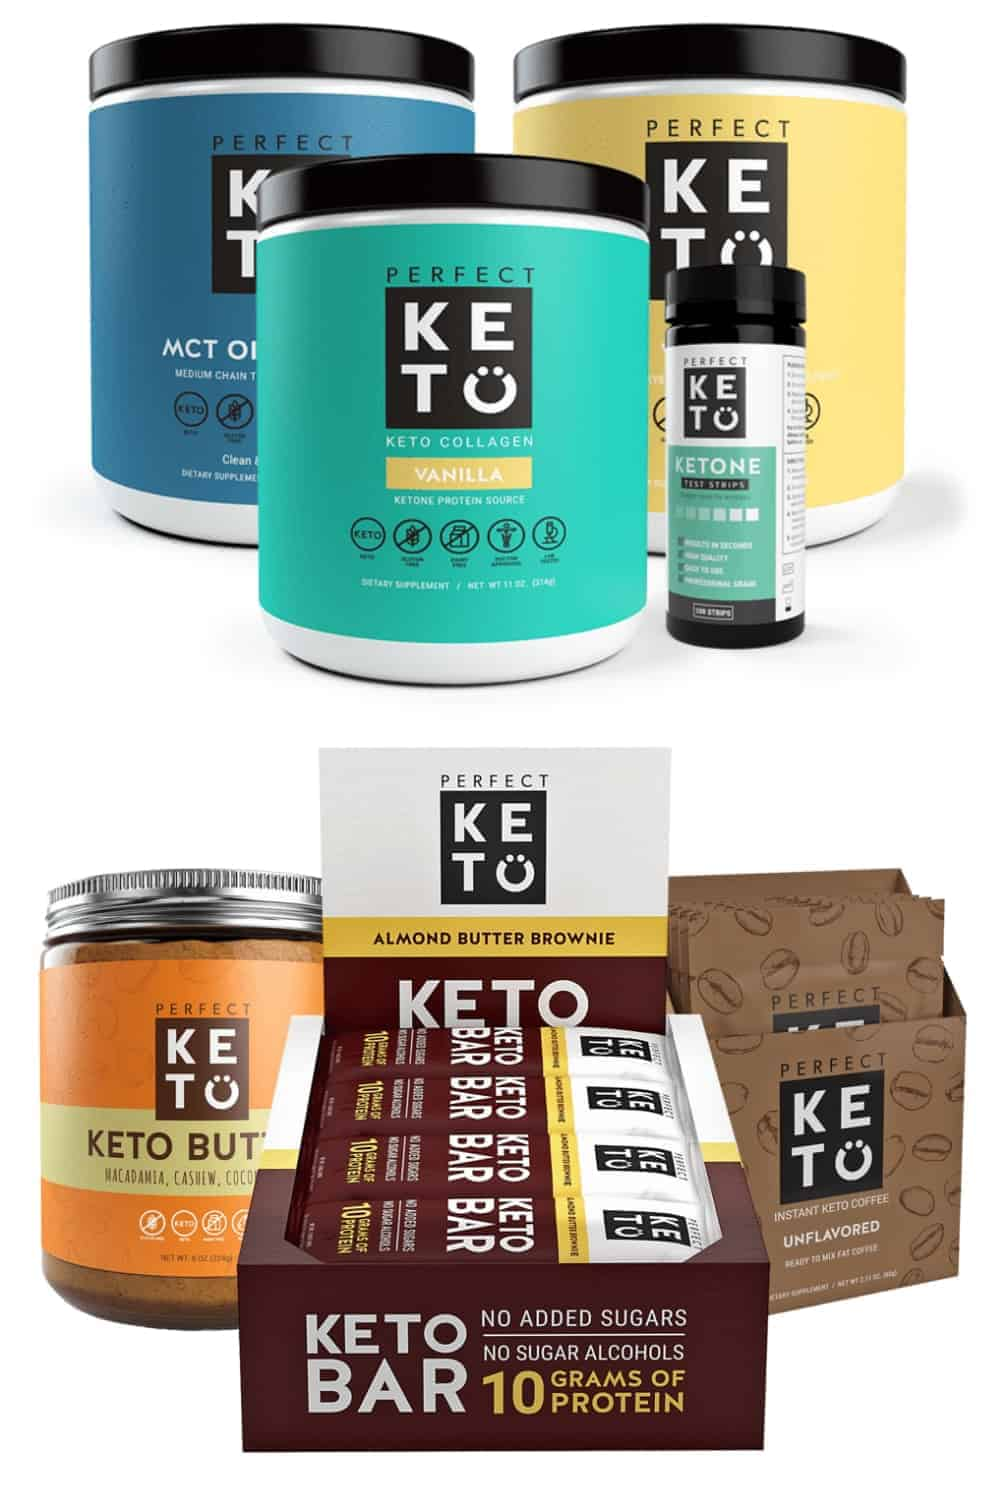 Perfect Keto Keto Collagen Flavors